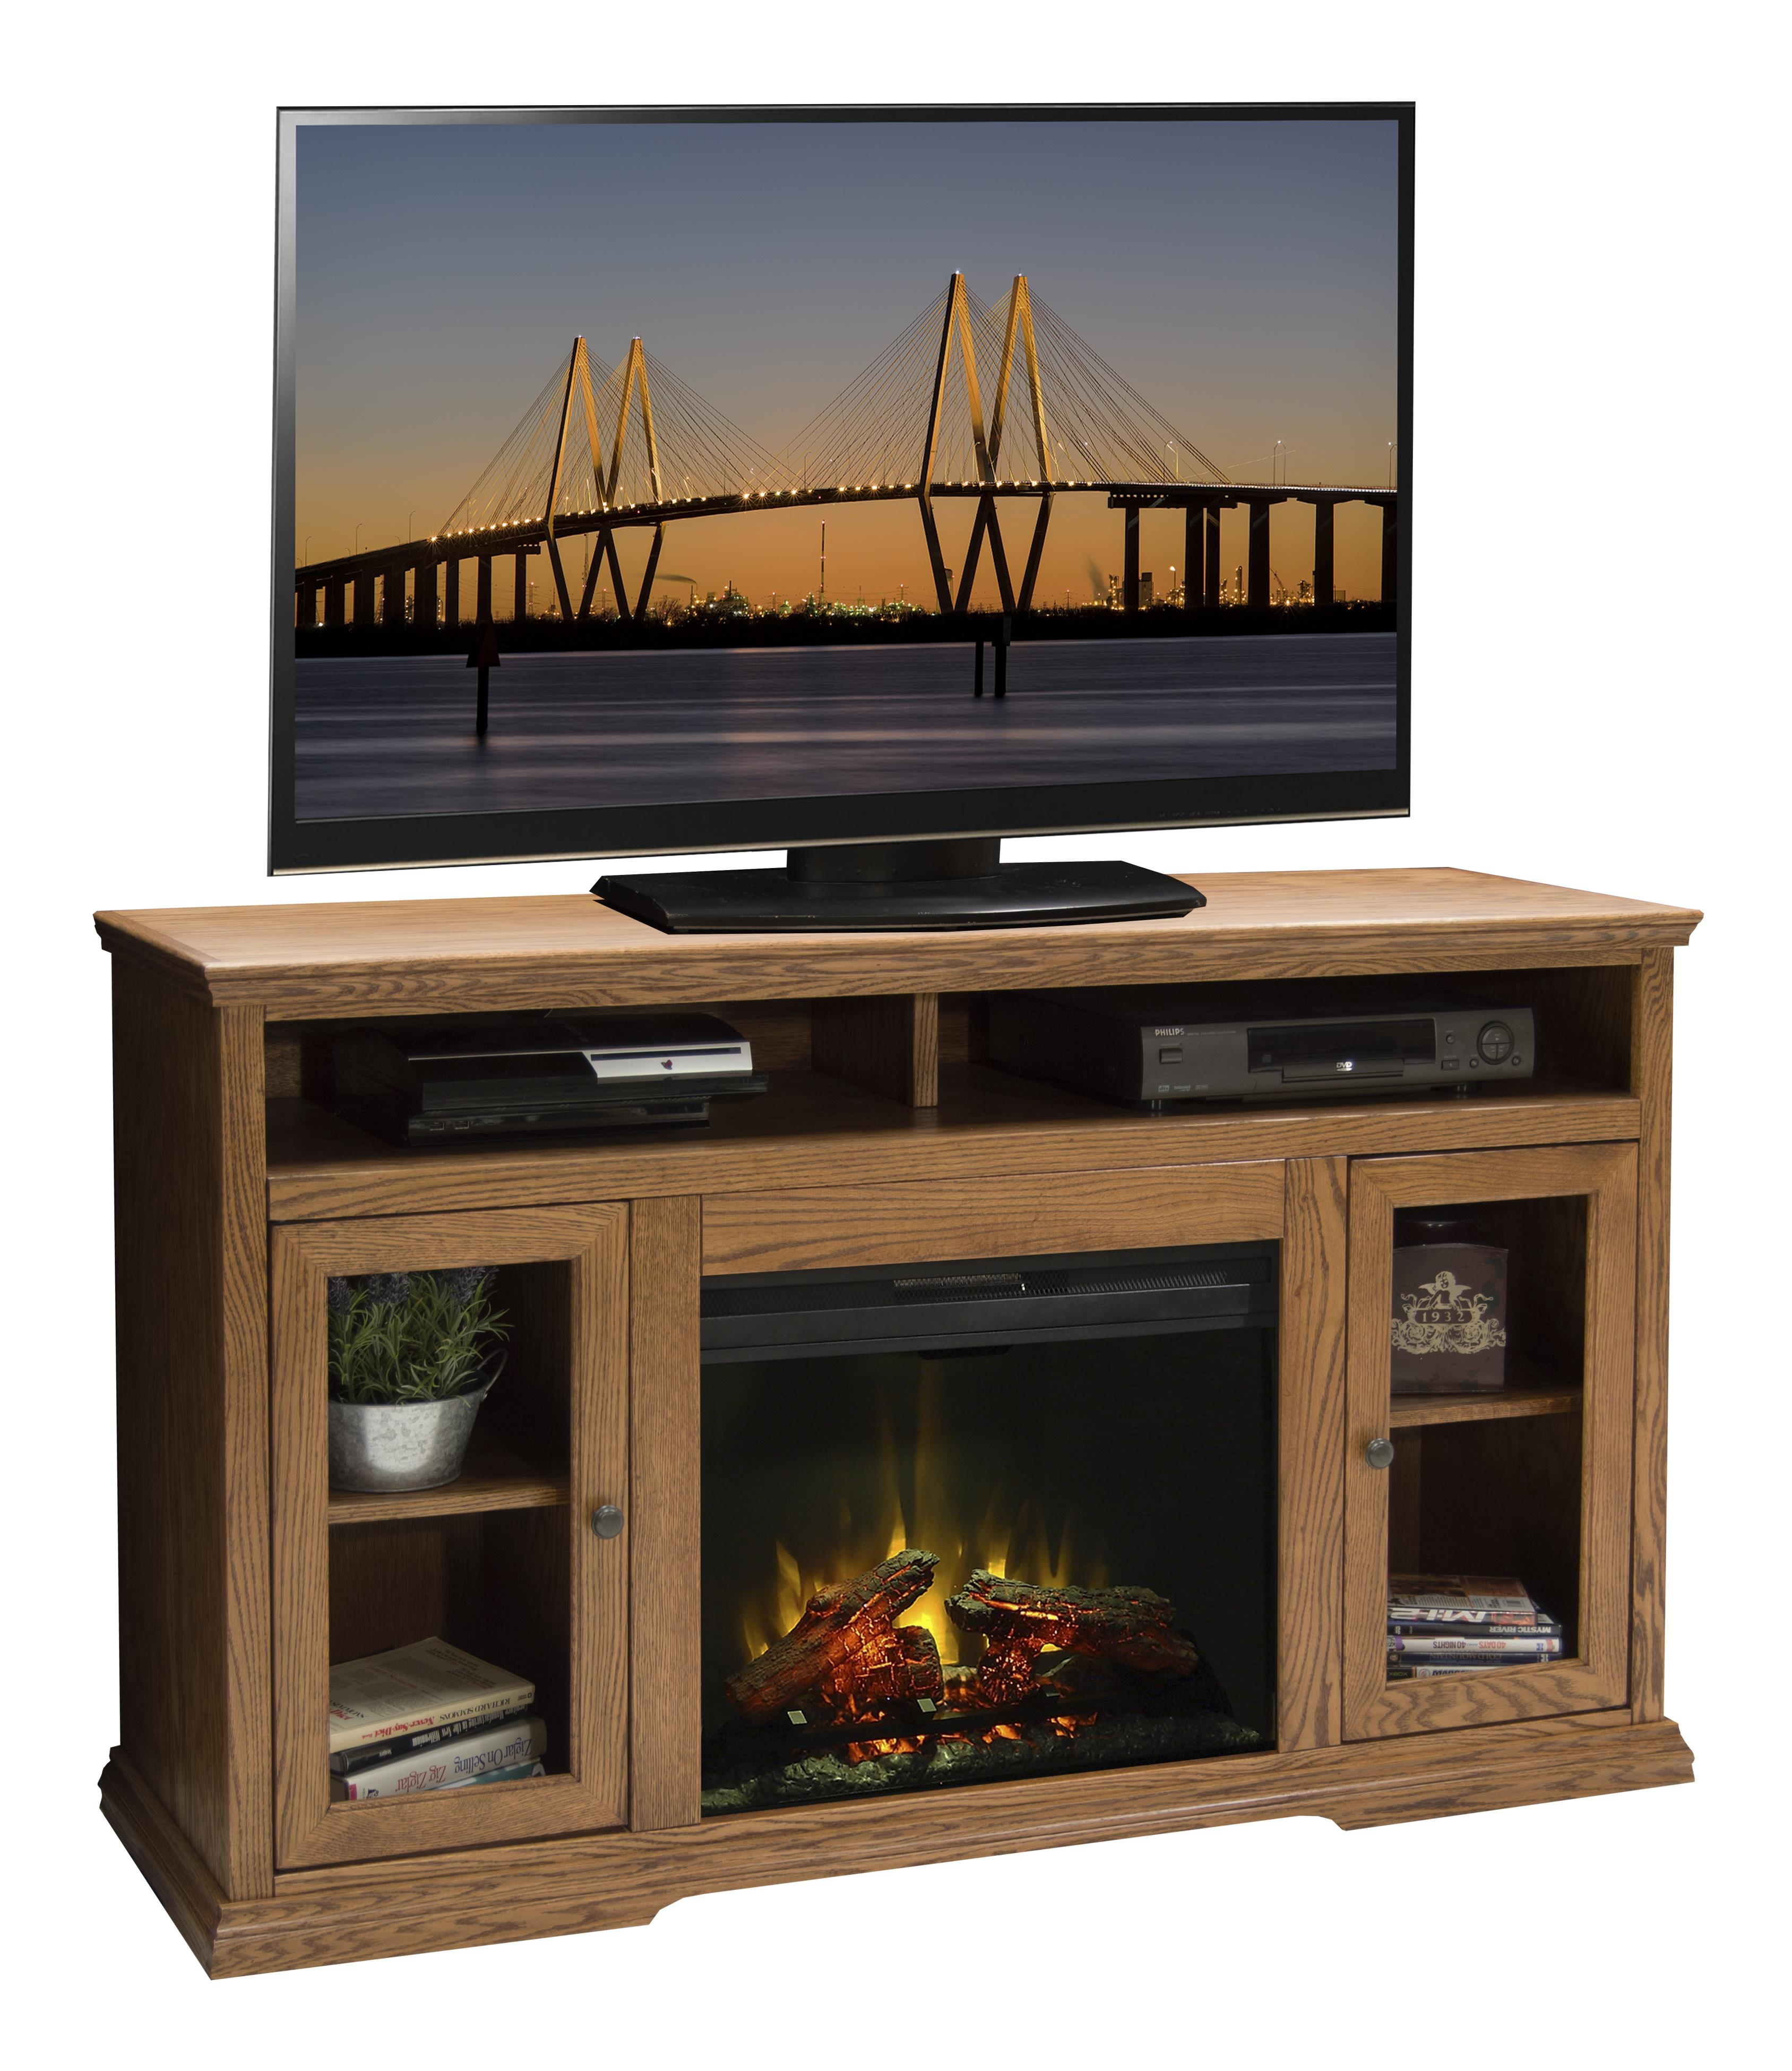 "Legends Furniture Colonial Place 59"" Fireplace TV Console - Item Number: CP5304.KIT"